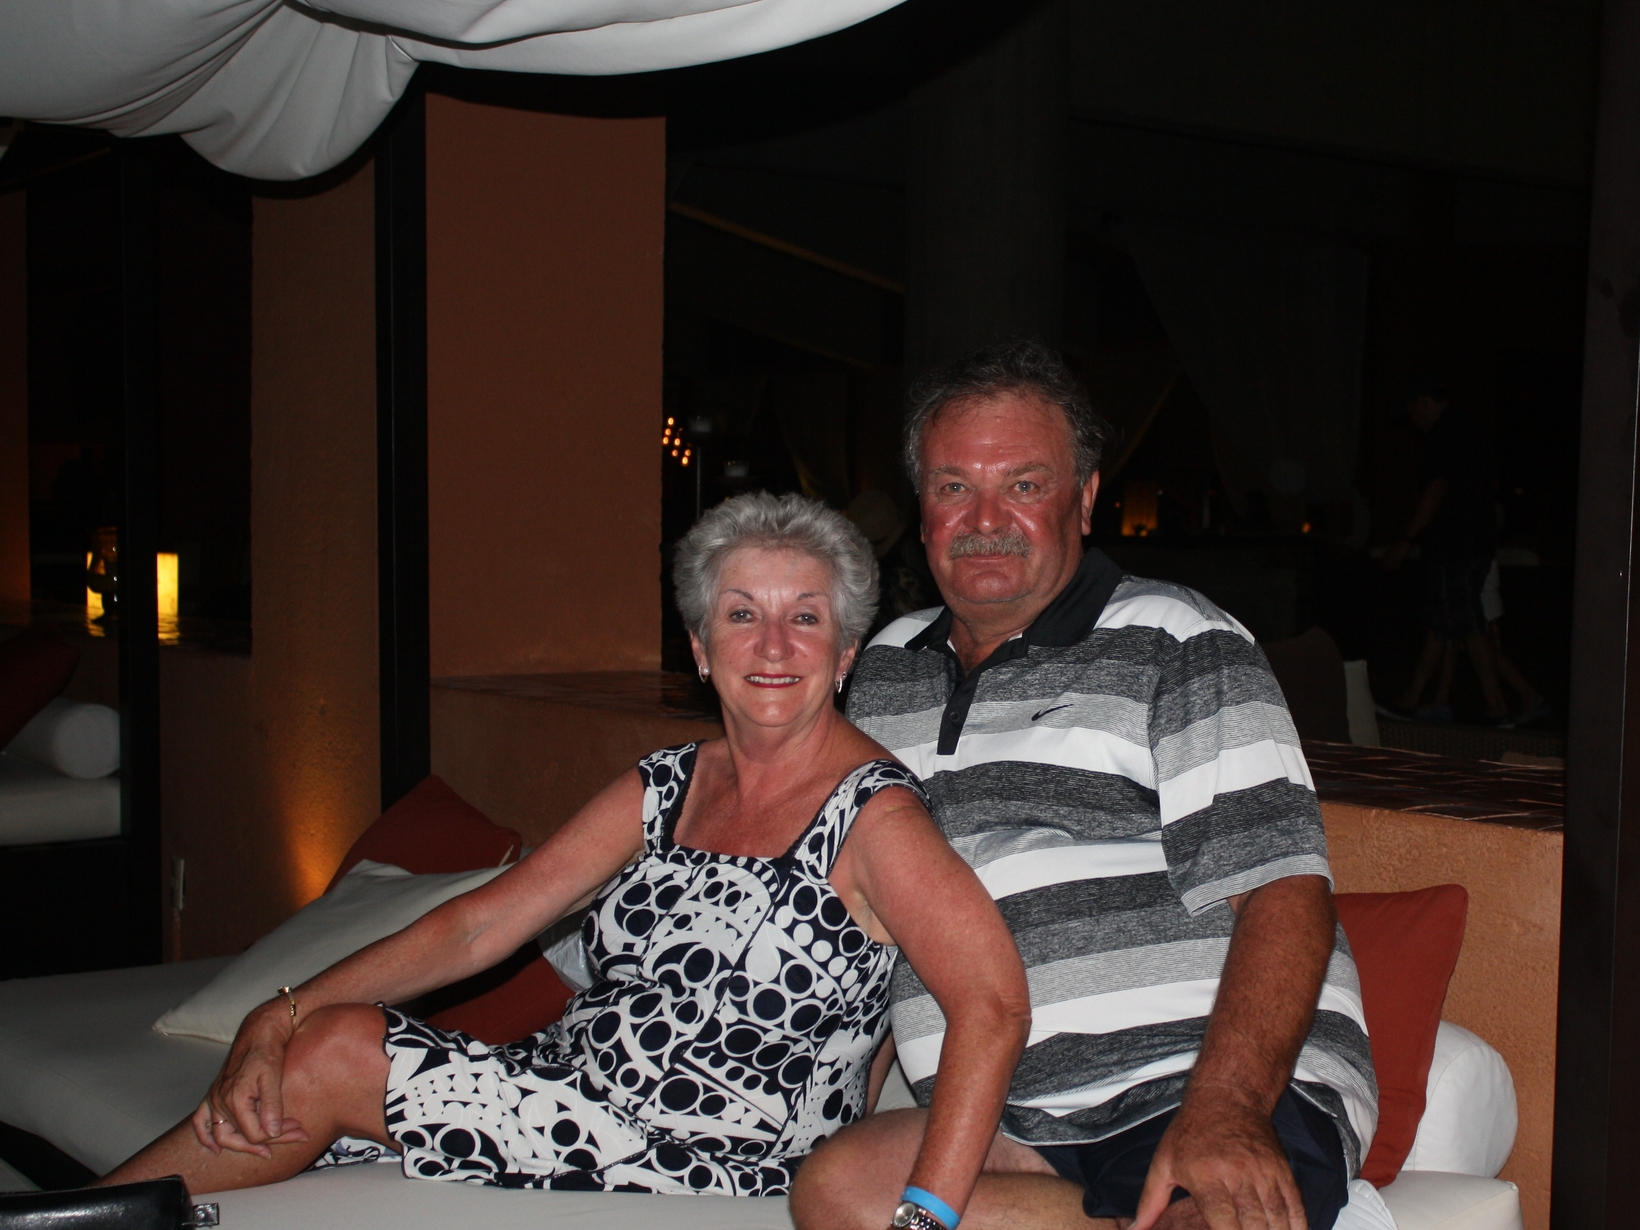 Annette & Charlie from Abbotsford, British Columbia, Canada